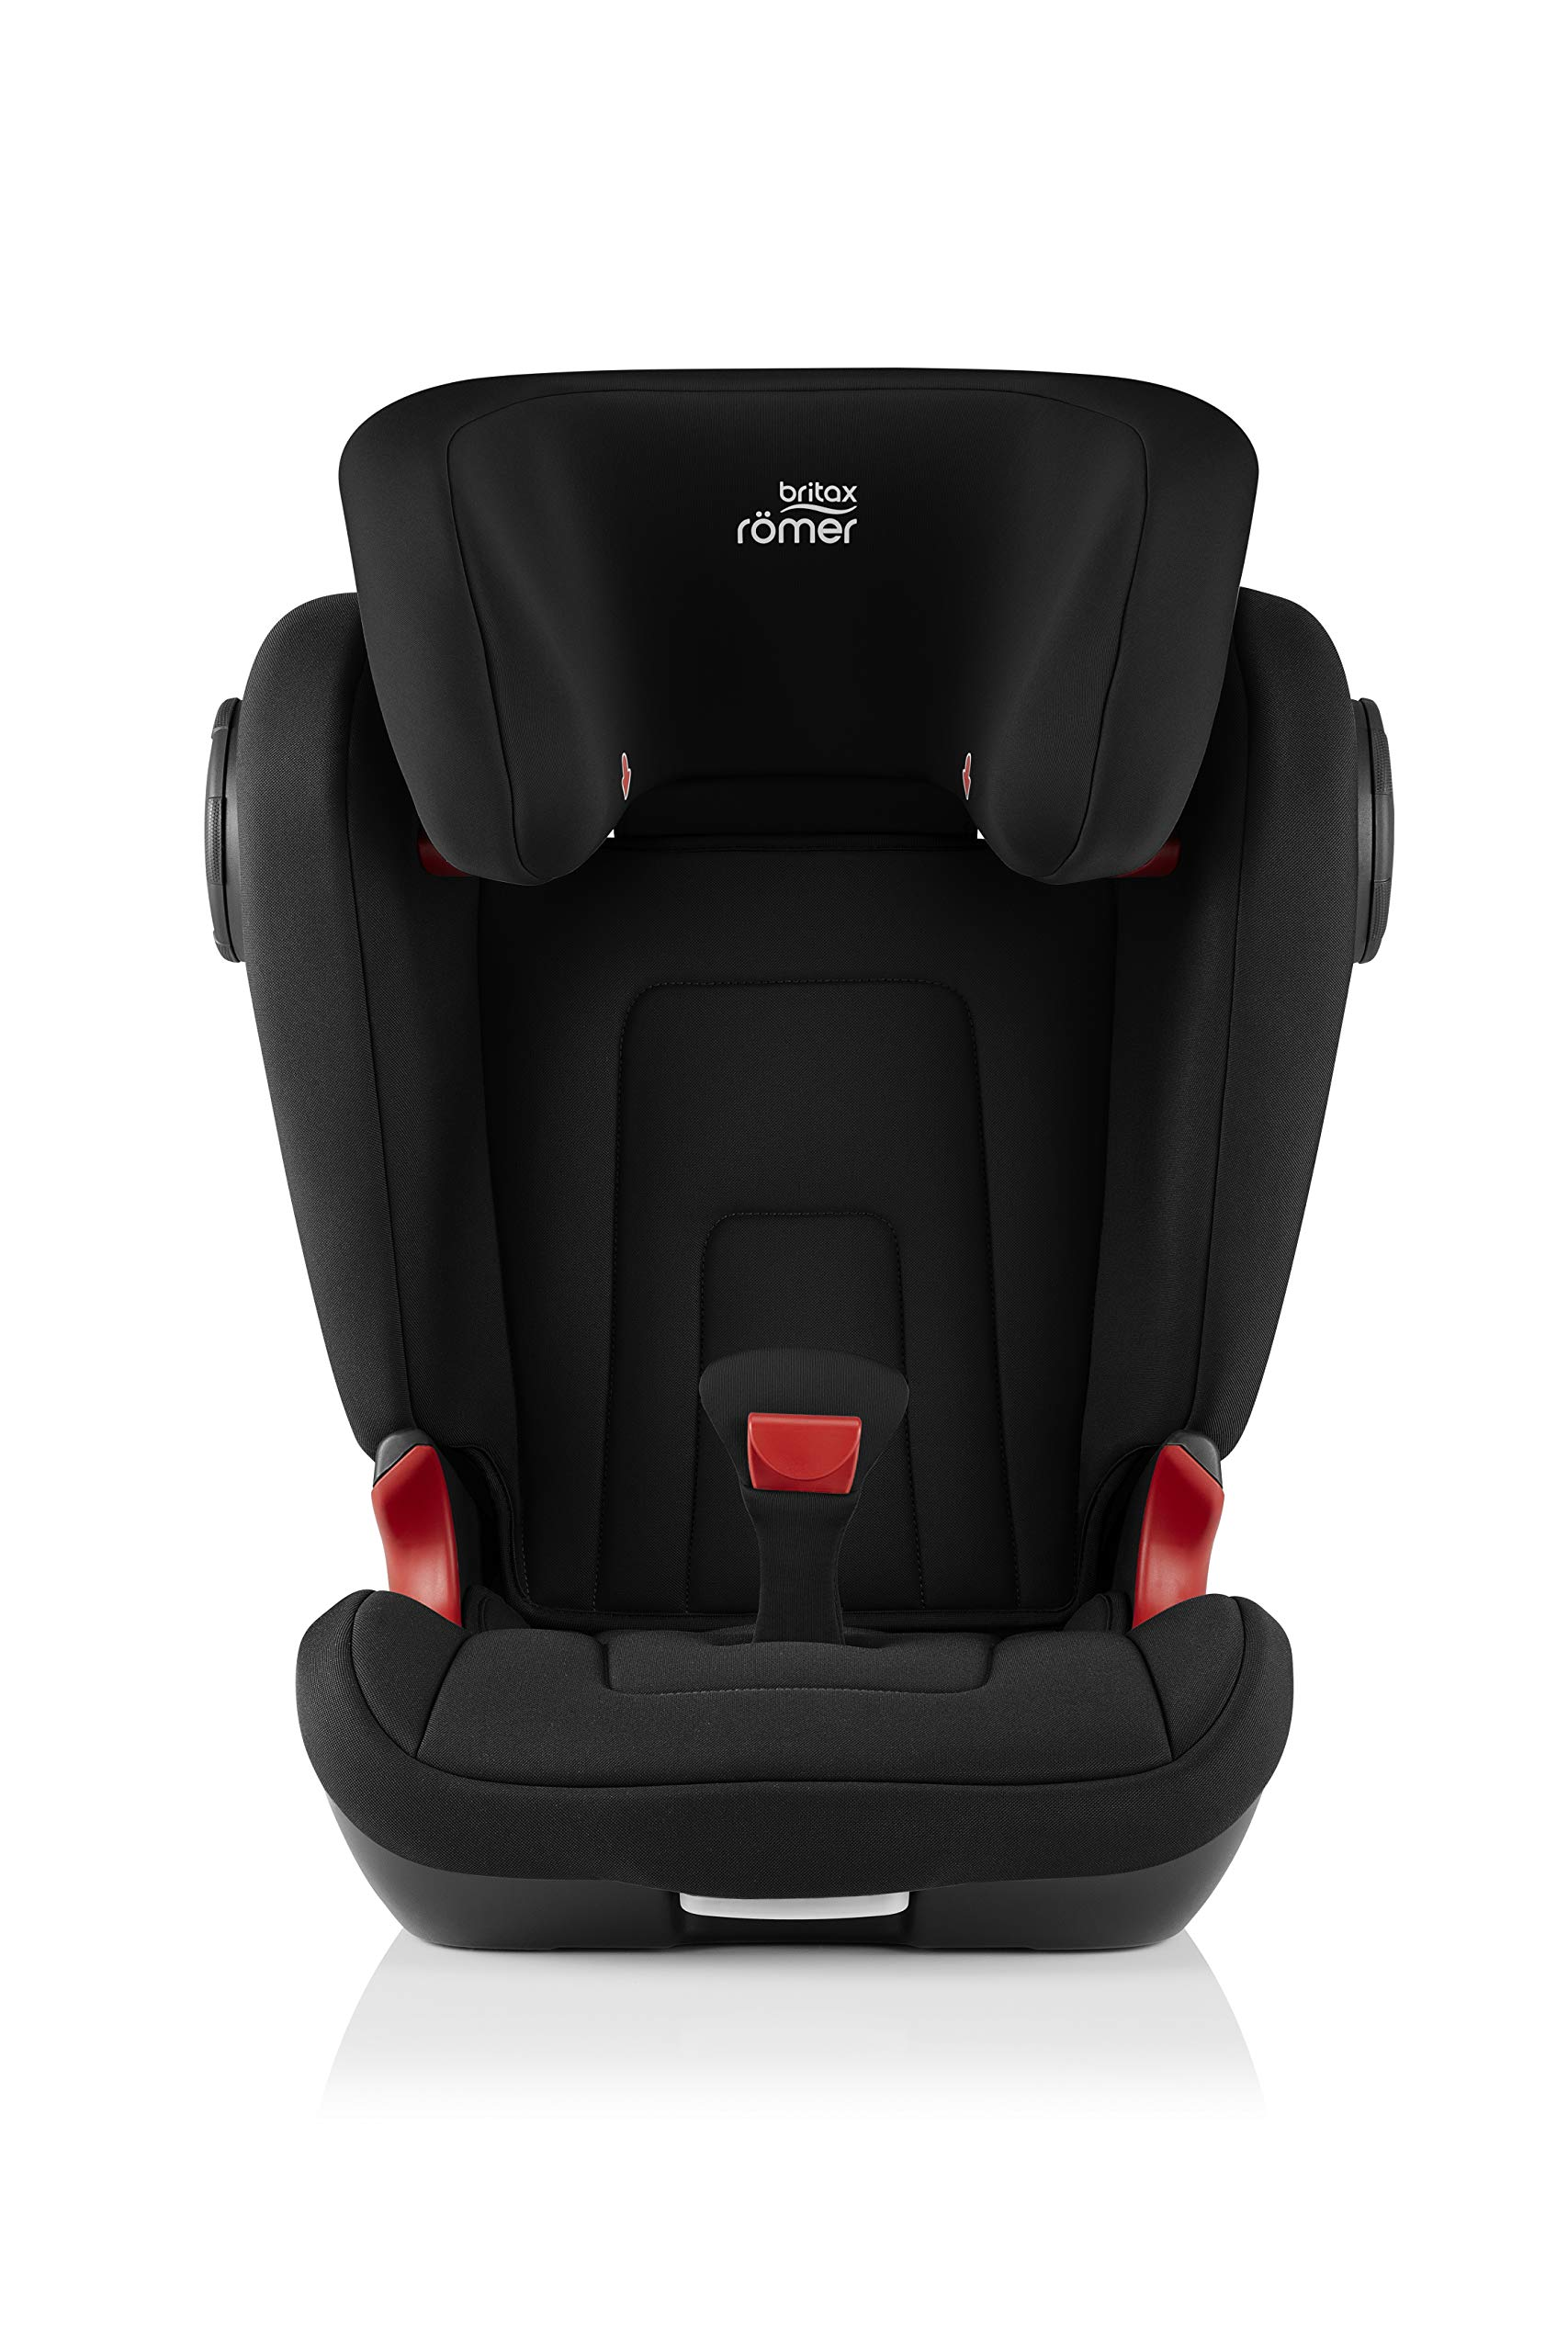 Britax Römer KIDFIX² S Group 2-3 (15-36kg) Car Seat - Cosmos Black  Advanced side impact protection - sict offers superior protection to your child in the event of a side collision. reducing impact forces by minimising the distance between the car and the car seat. Secure guard - helps to protect your child's delicate abdominal area by adding an extra - a 4th - contact point to the 3-point seat belt. High back booster - protects your child in 3 ways: provides head to hip protection; belt guides provide correct positioning of the seat belt and the padded headrest provides safety and comfort. 2